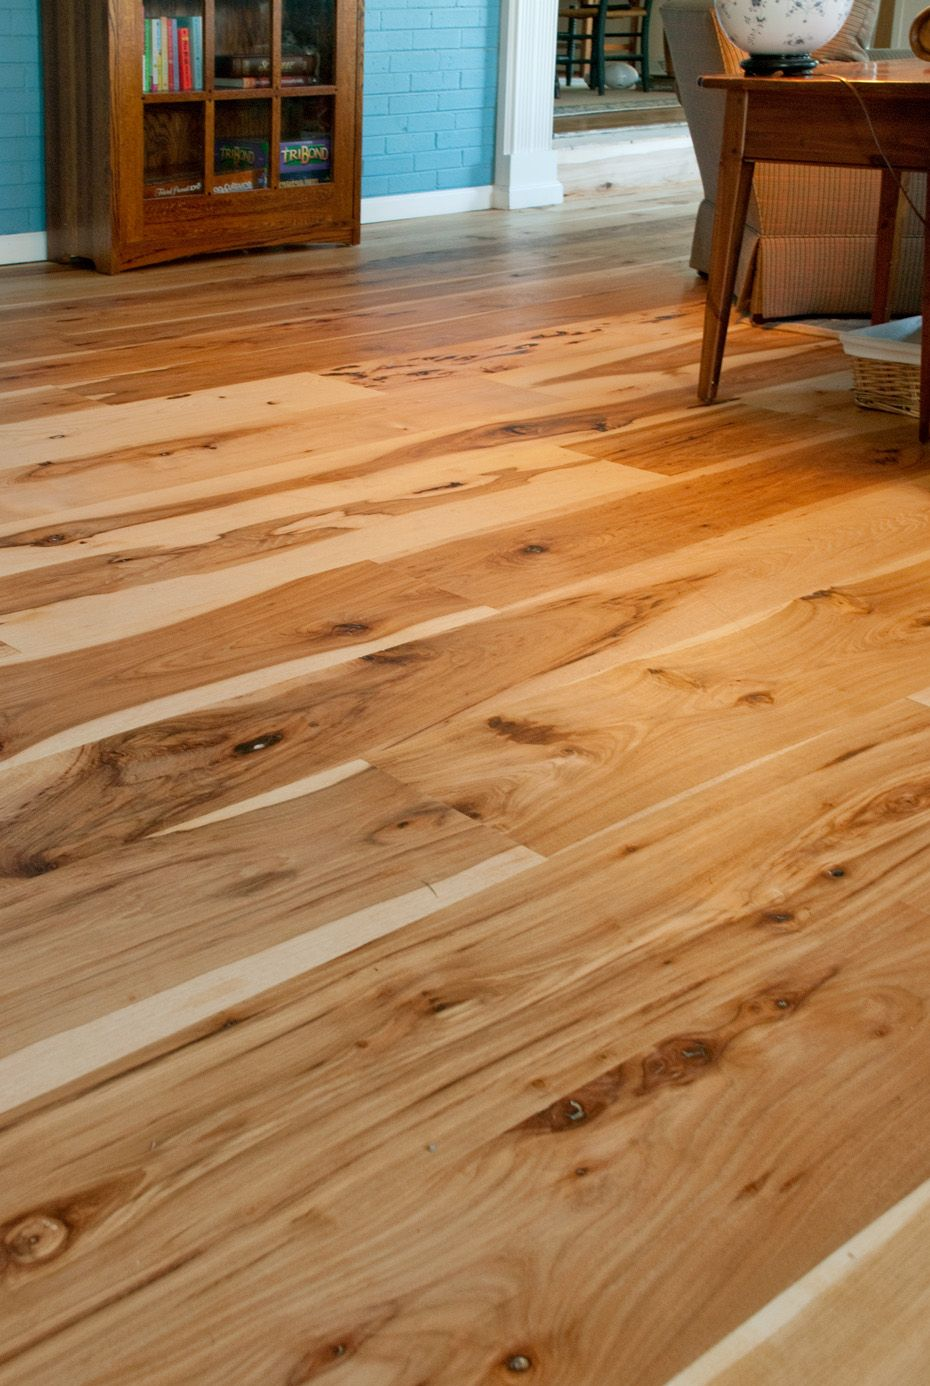 Modern Design Hickory Hardwood Floors Hickory Flooring Woodworking Furniture Plans Hickory Hardwood Floors